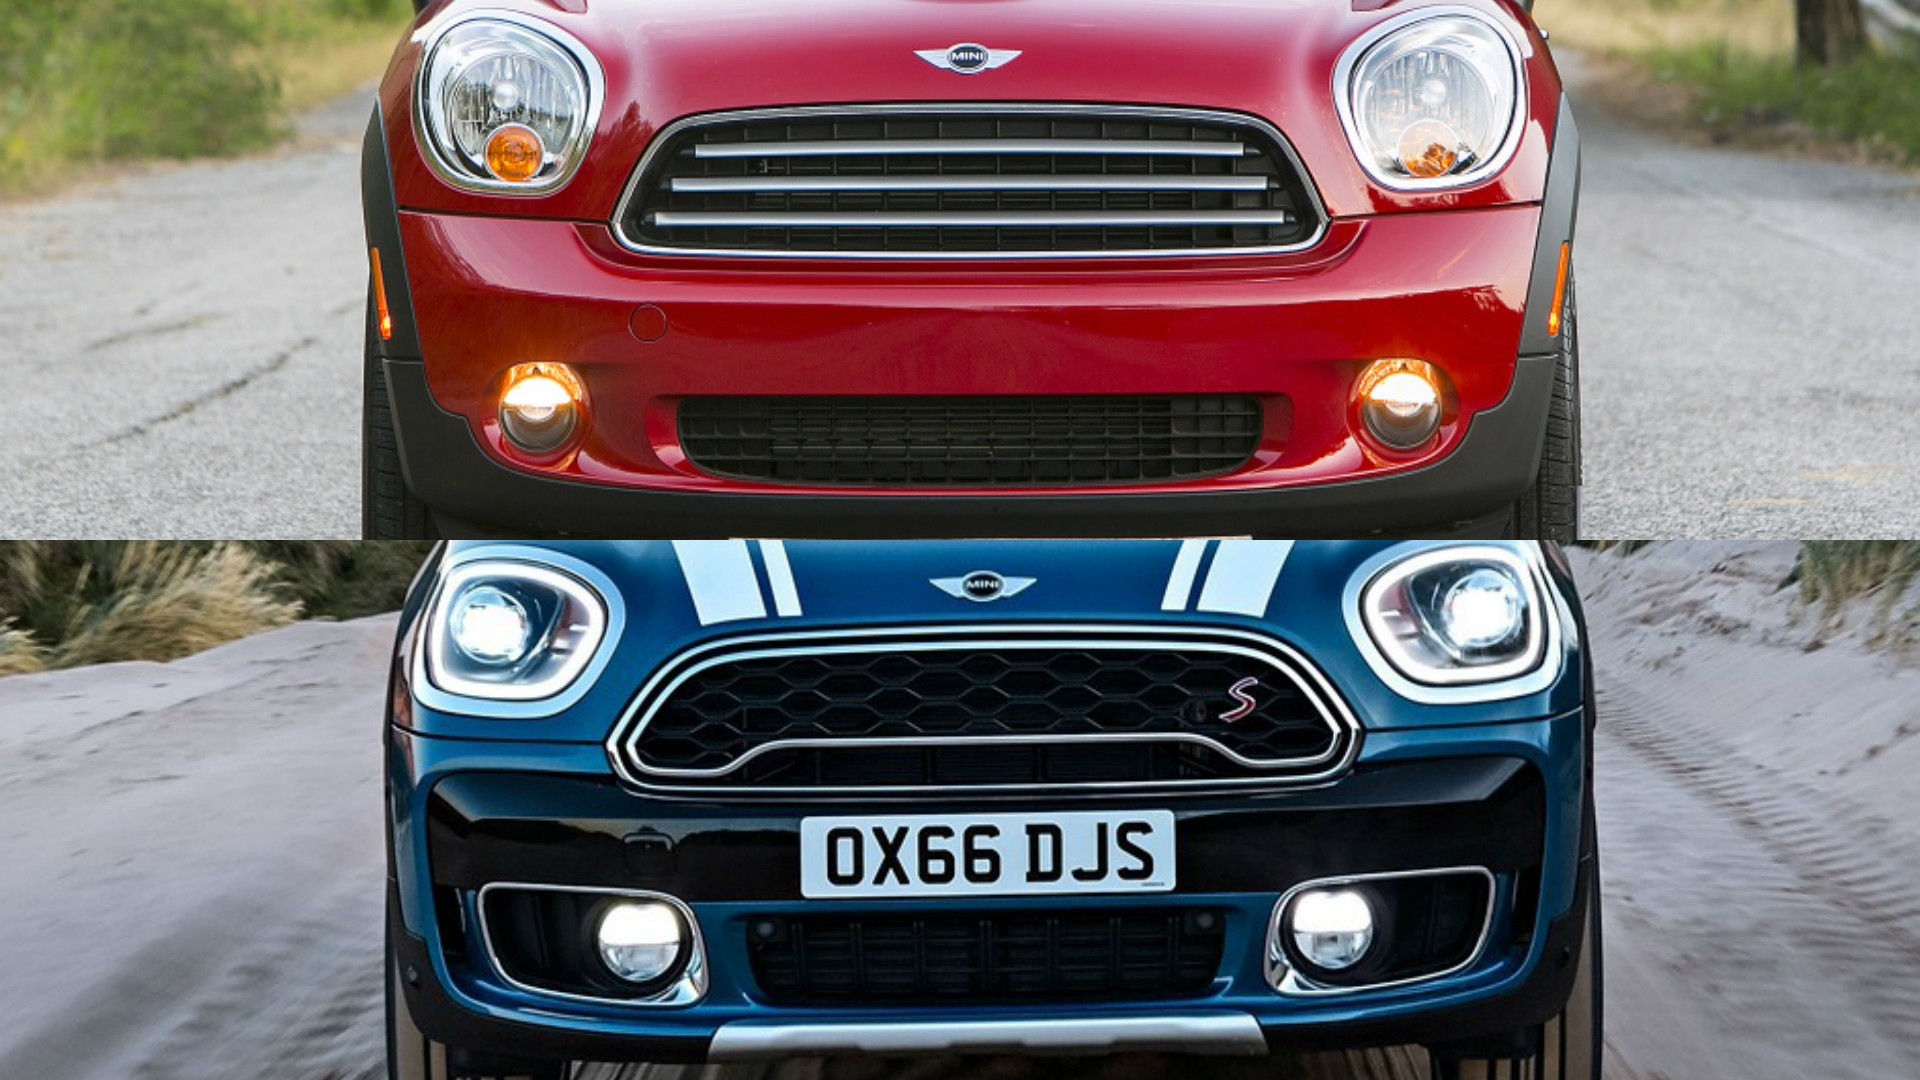 2017 Mini Countryman Vs 2010 Model Main Differences Between The Two